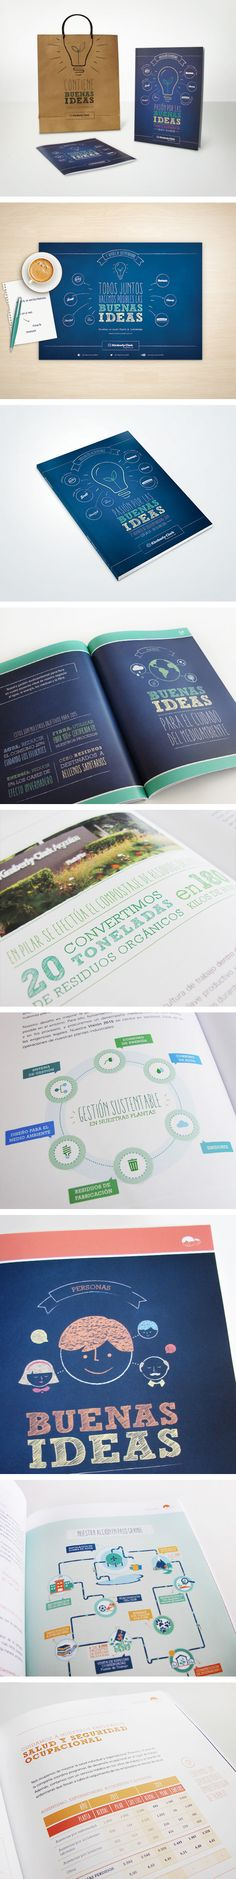 Editorial Design / Campaign Kimberly Clark: CSR Report 2014